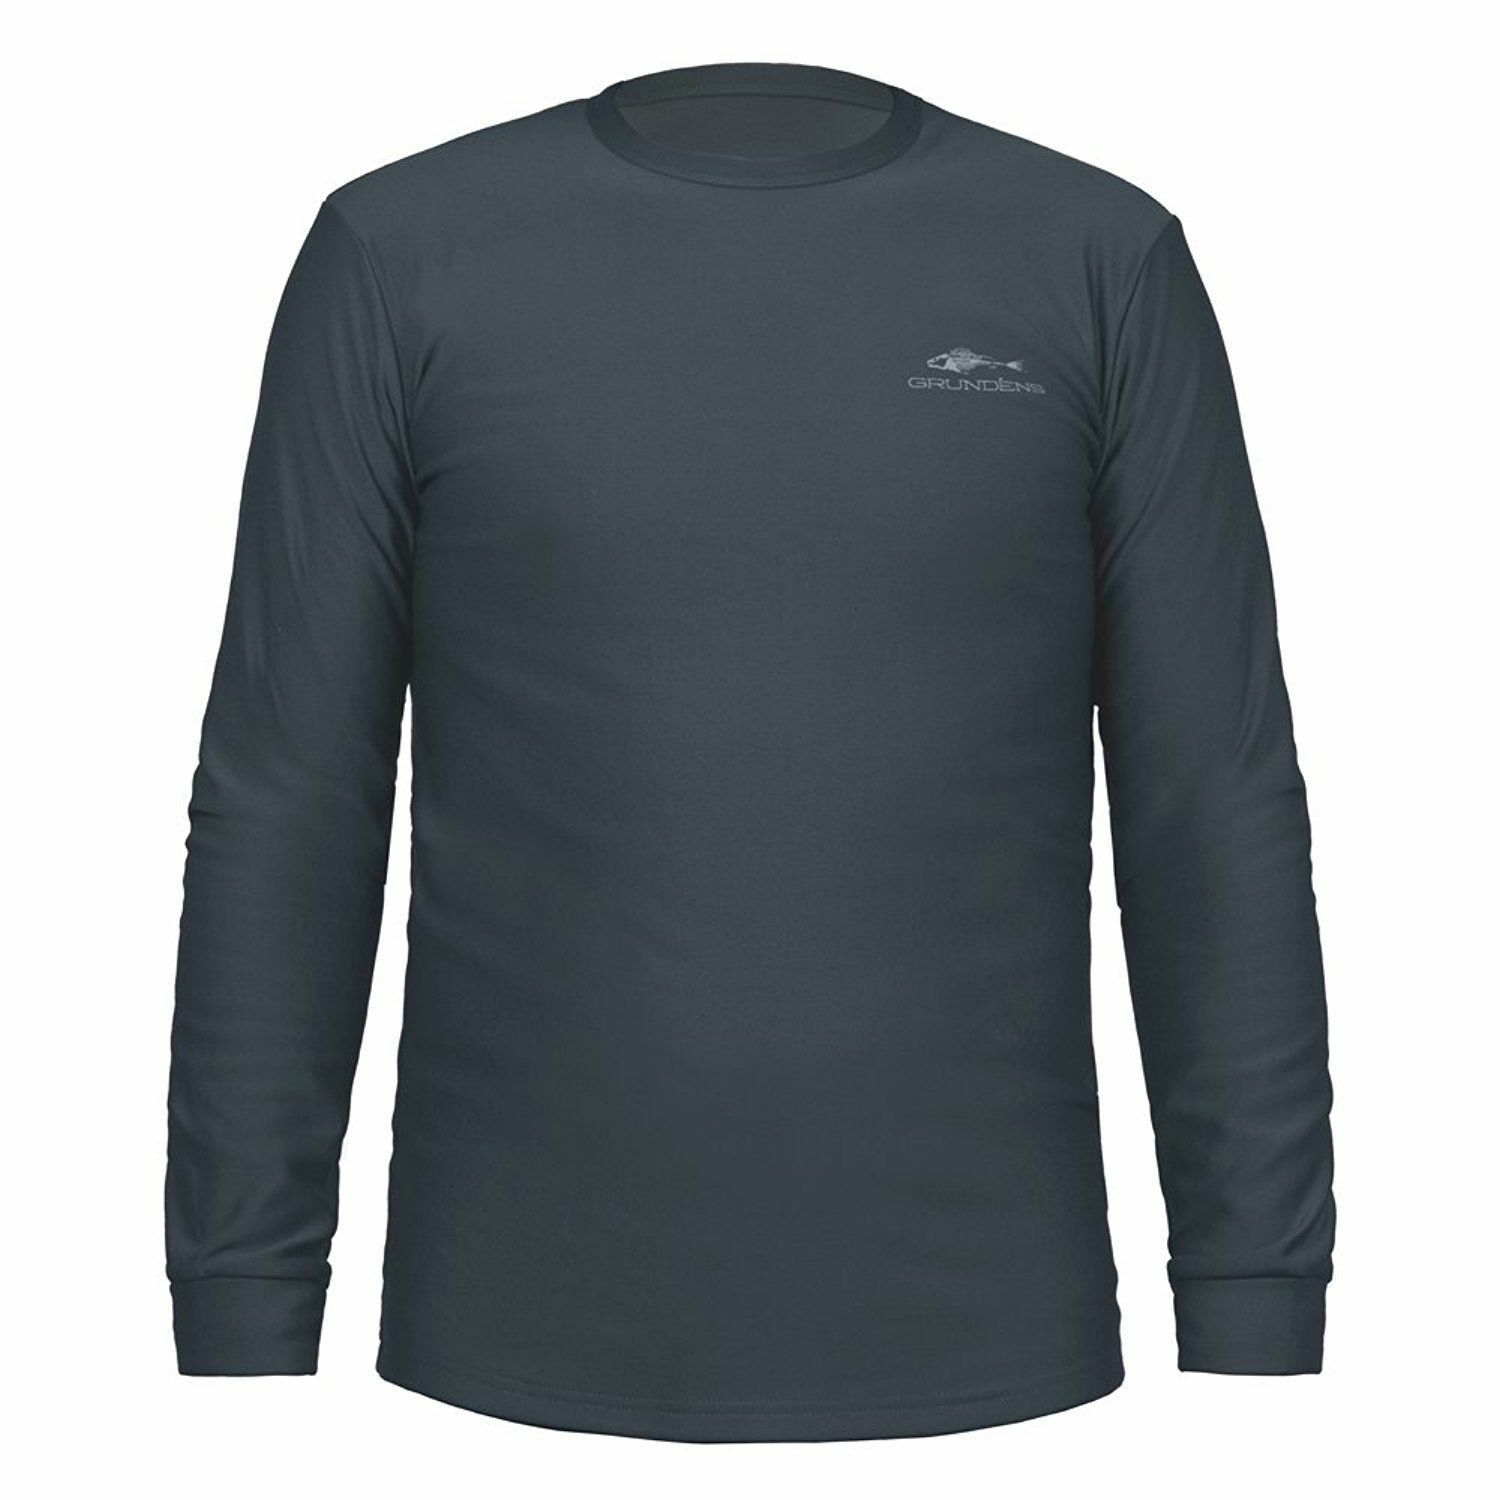 Grundens Grundies Base Layer Crew  Top 30002 All Sizes  factory direct and quick delivery